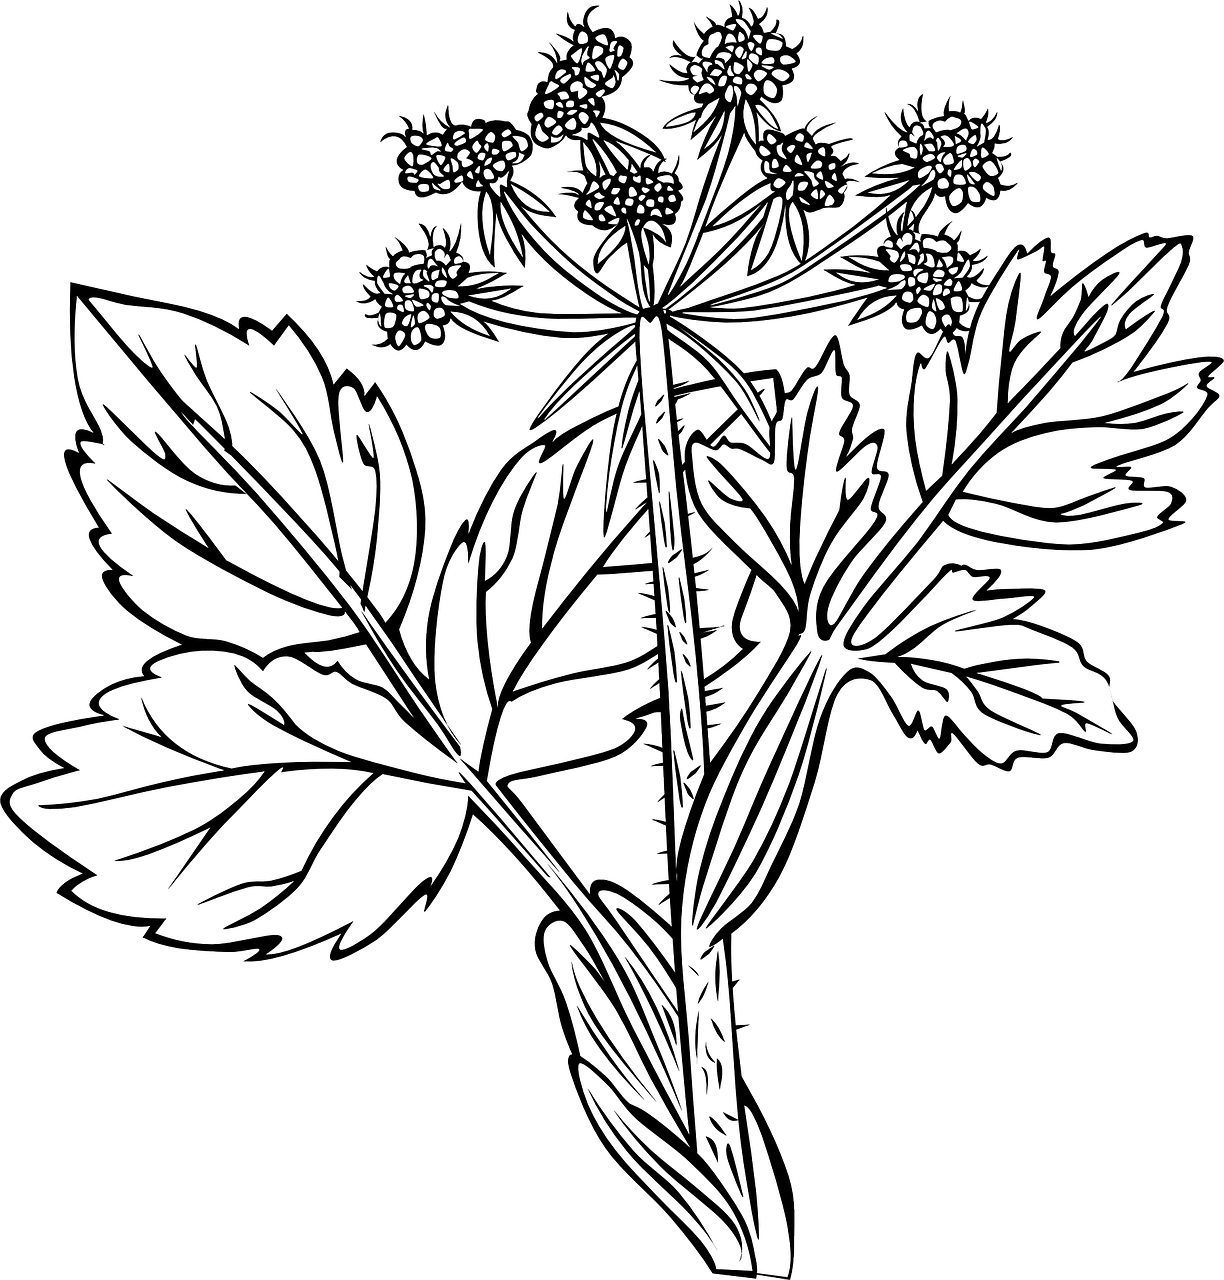 Weeds drawing nature. White snakeroot plant flowers